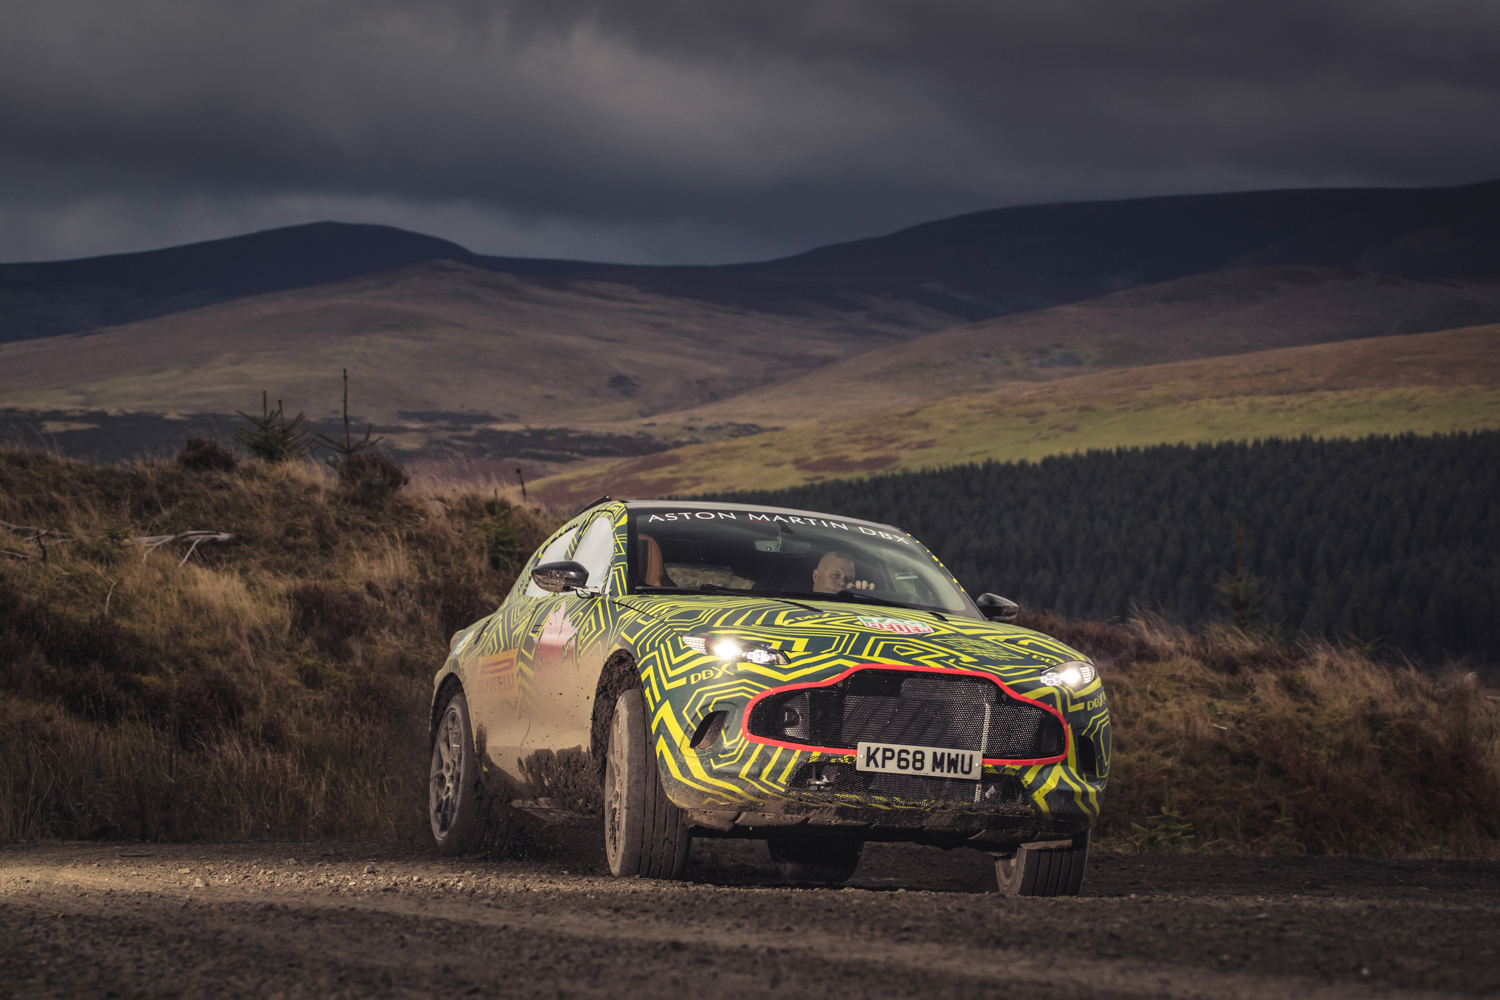 Aston Martin DBX prototype 3/4 off road dirt covered